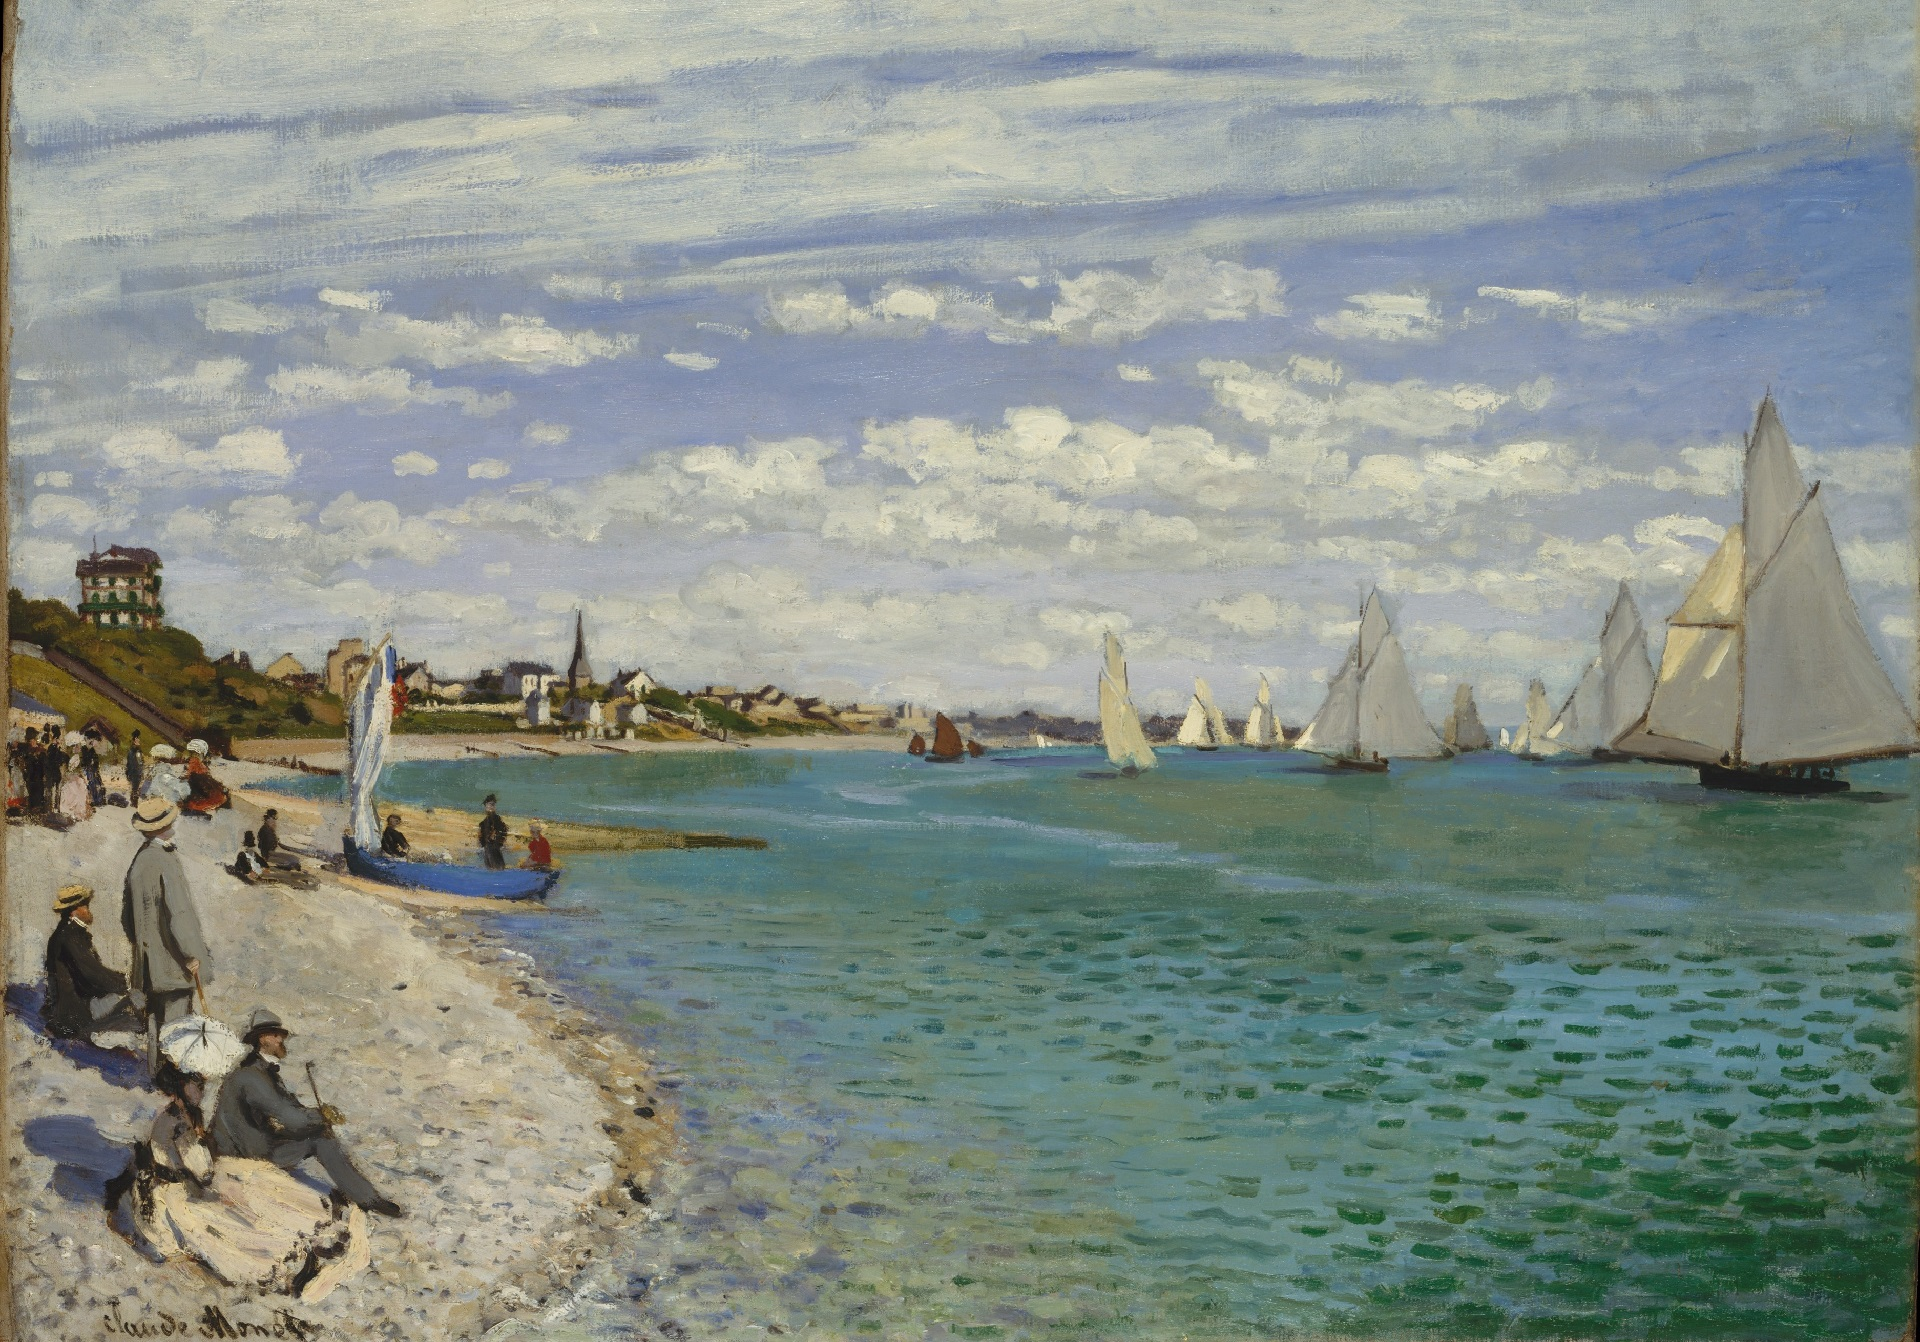 Claude Monet - Regatta at Sainte-Adresse 1867